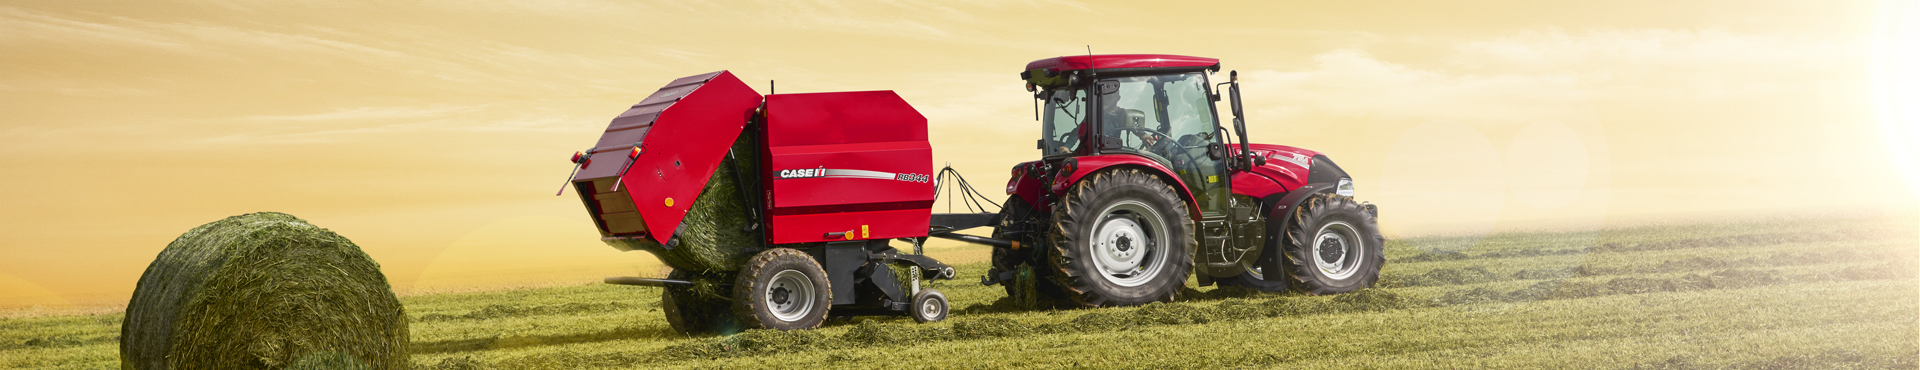 case-ih-rb-page